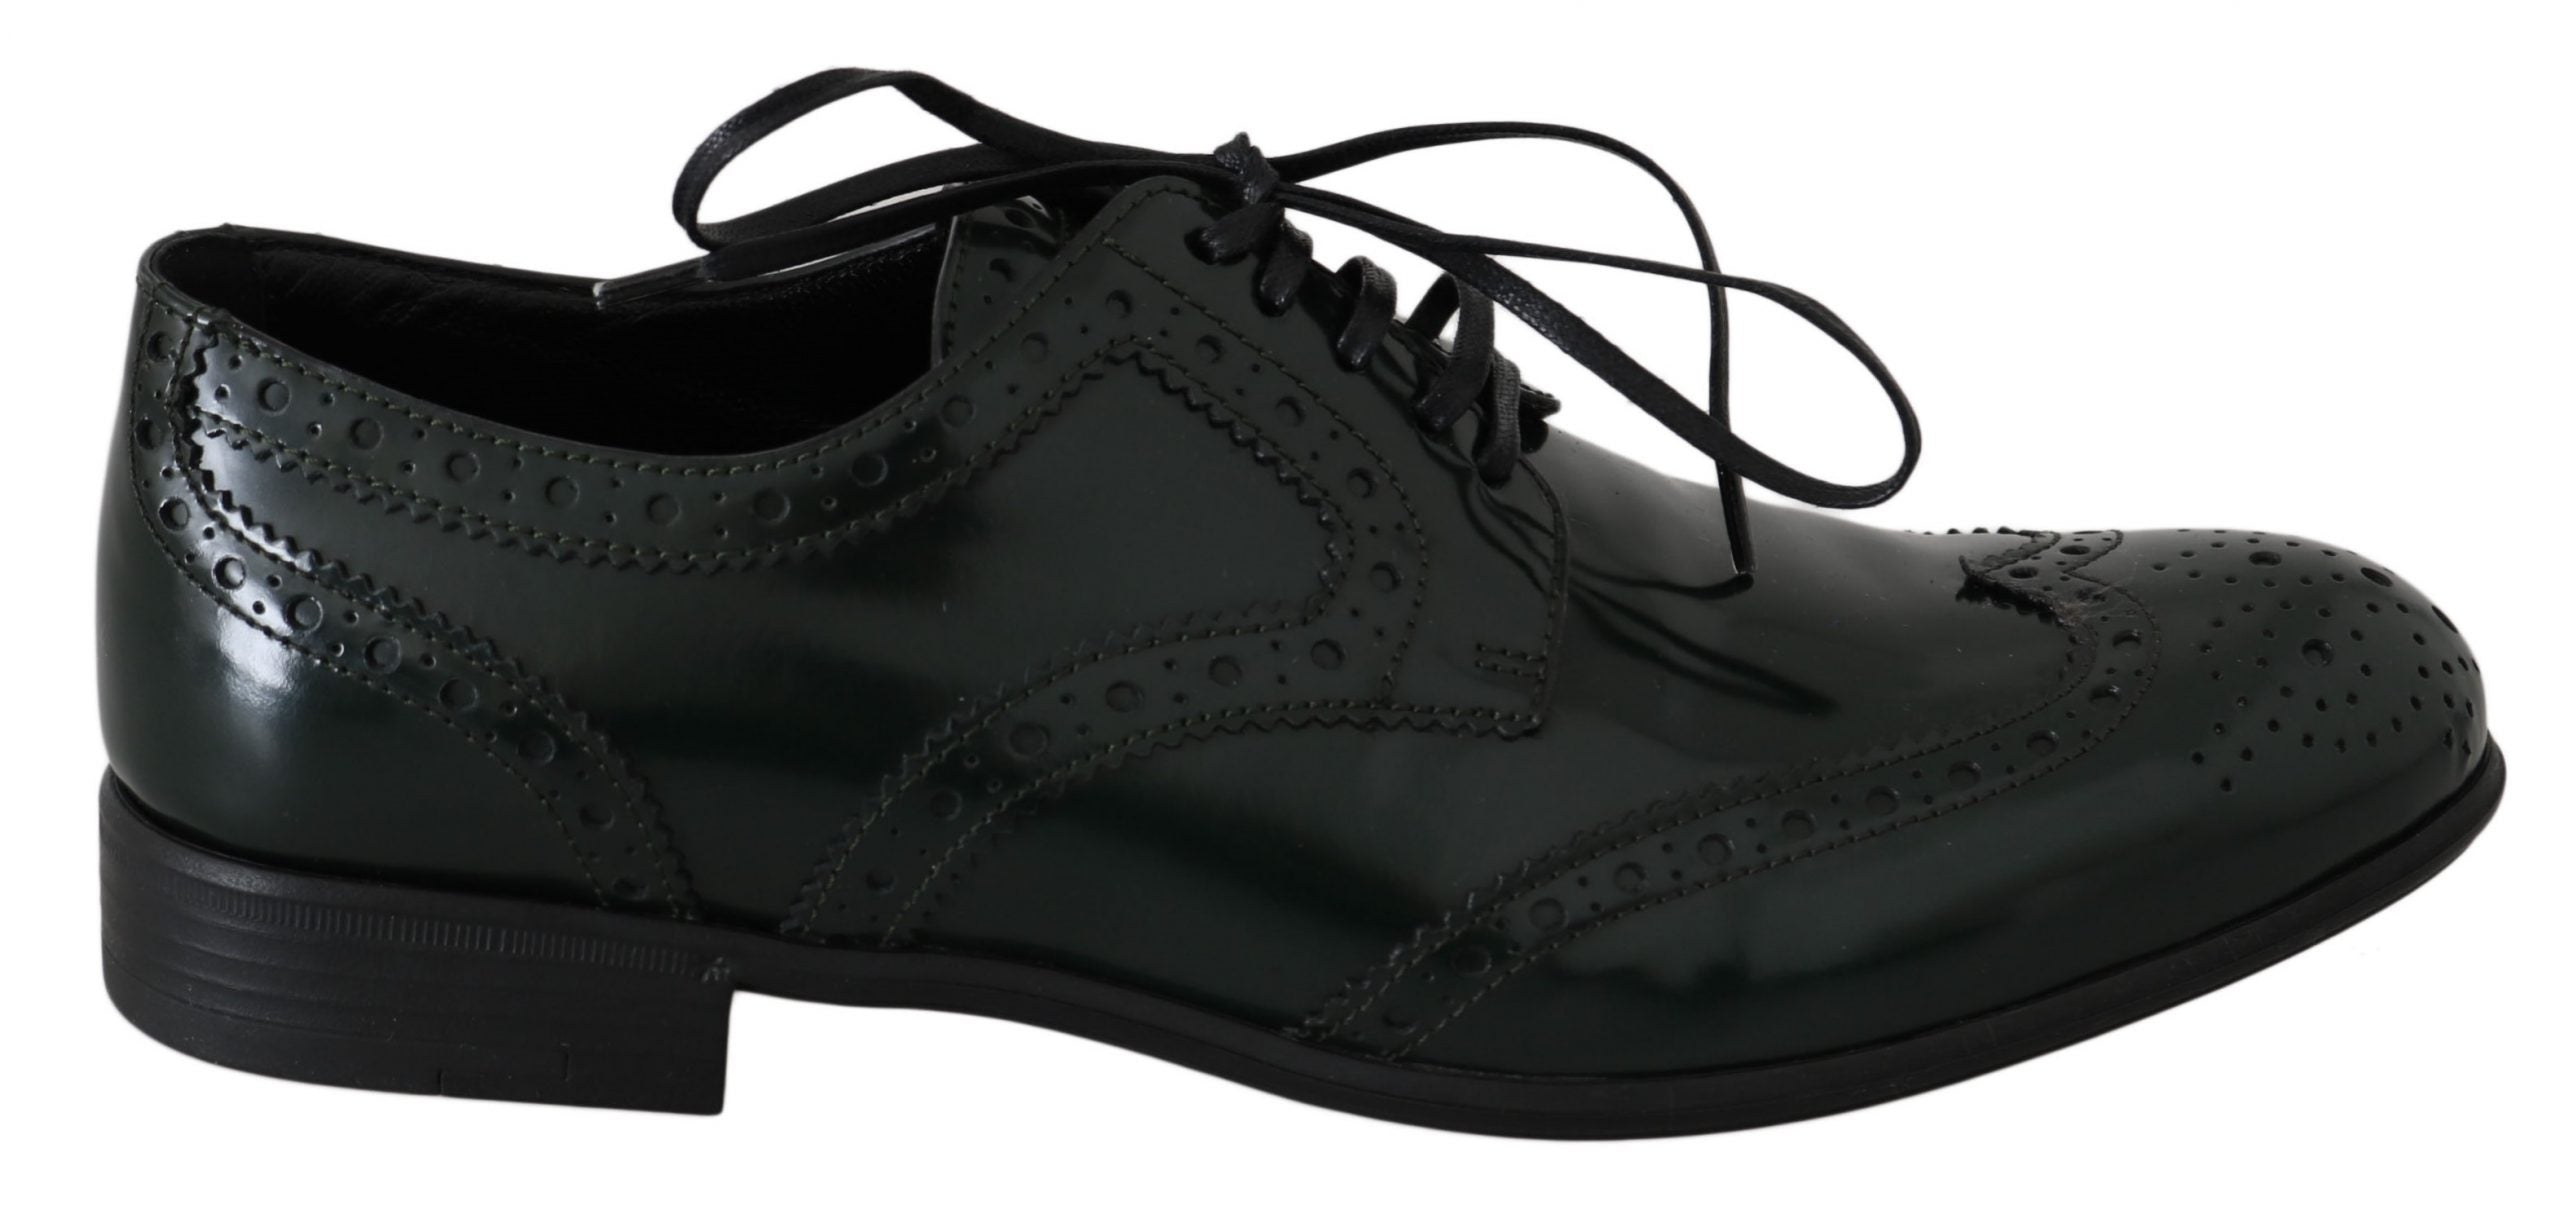 Image of Dolce & Gabbana Green Leather Broque Oxford Wingtip Shoes